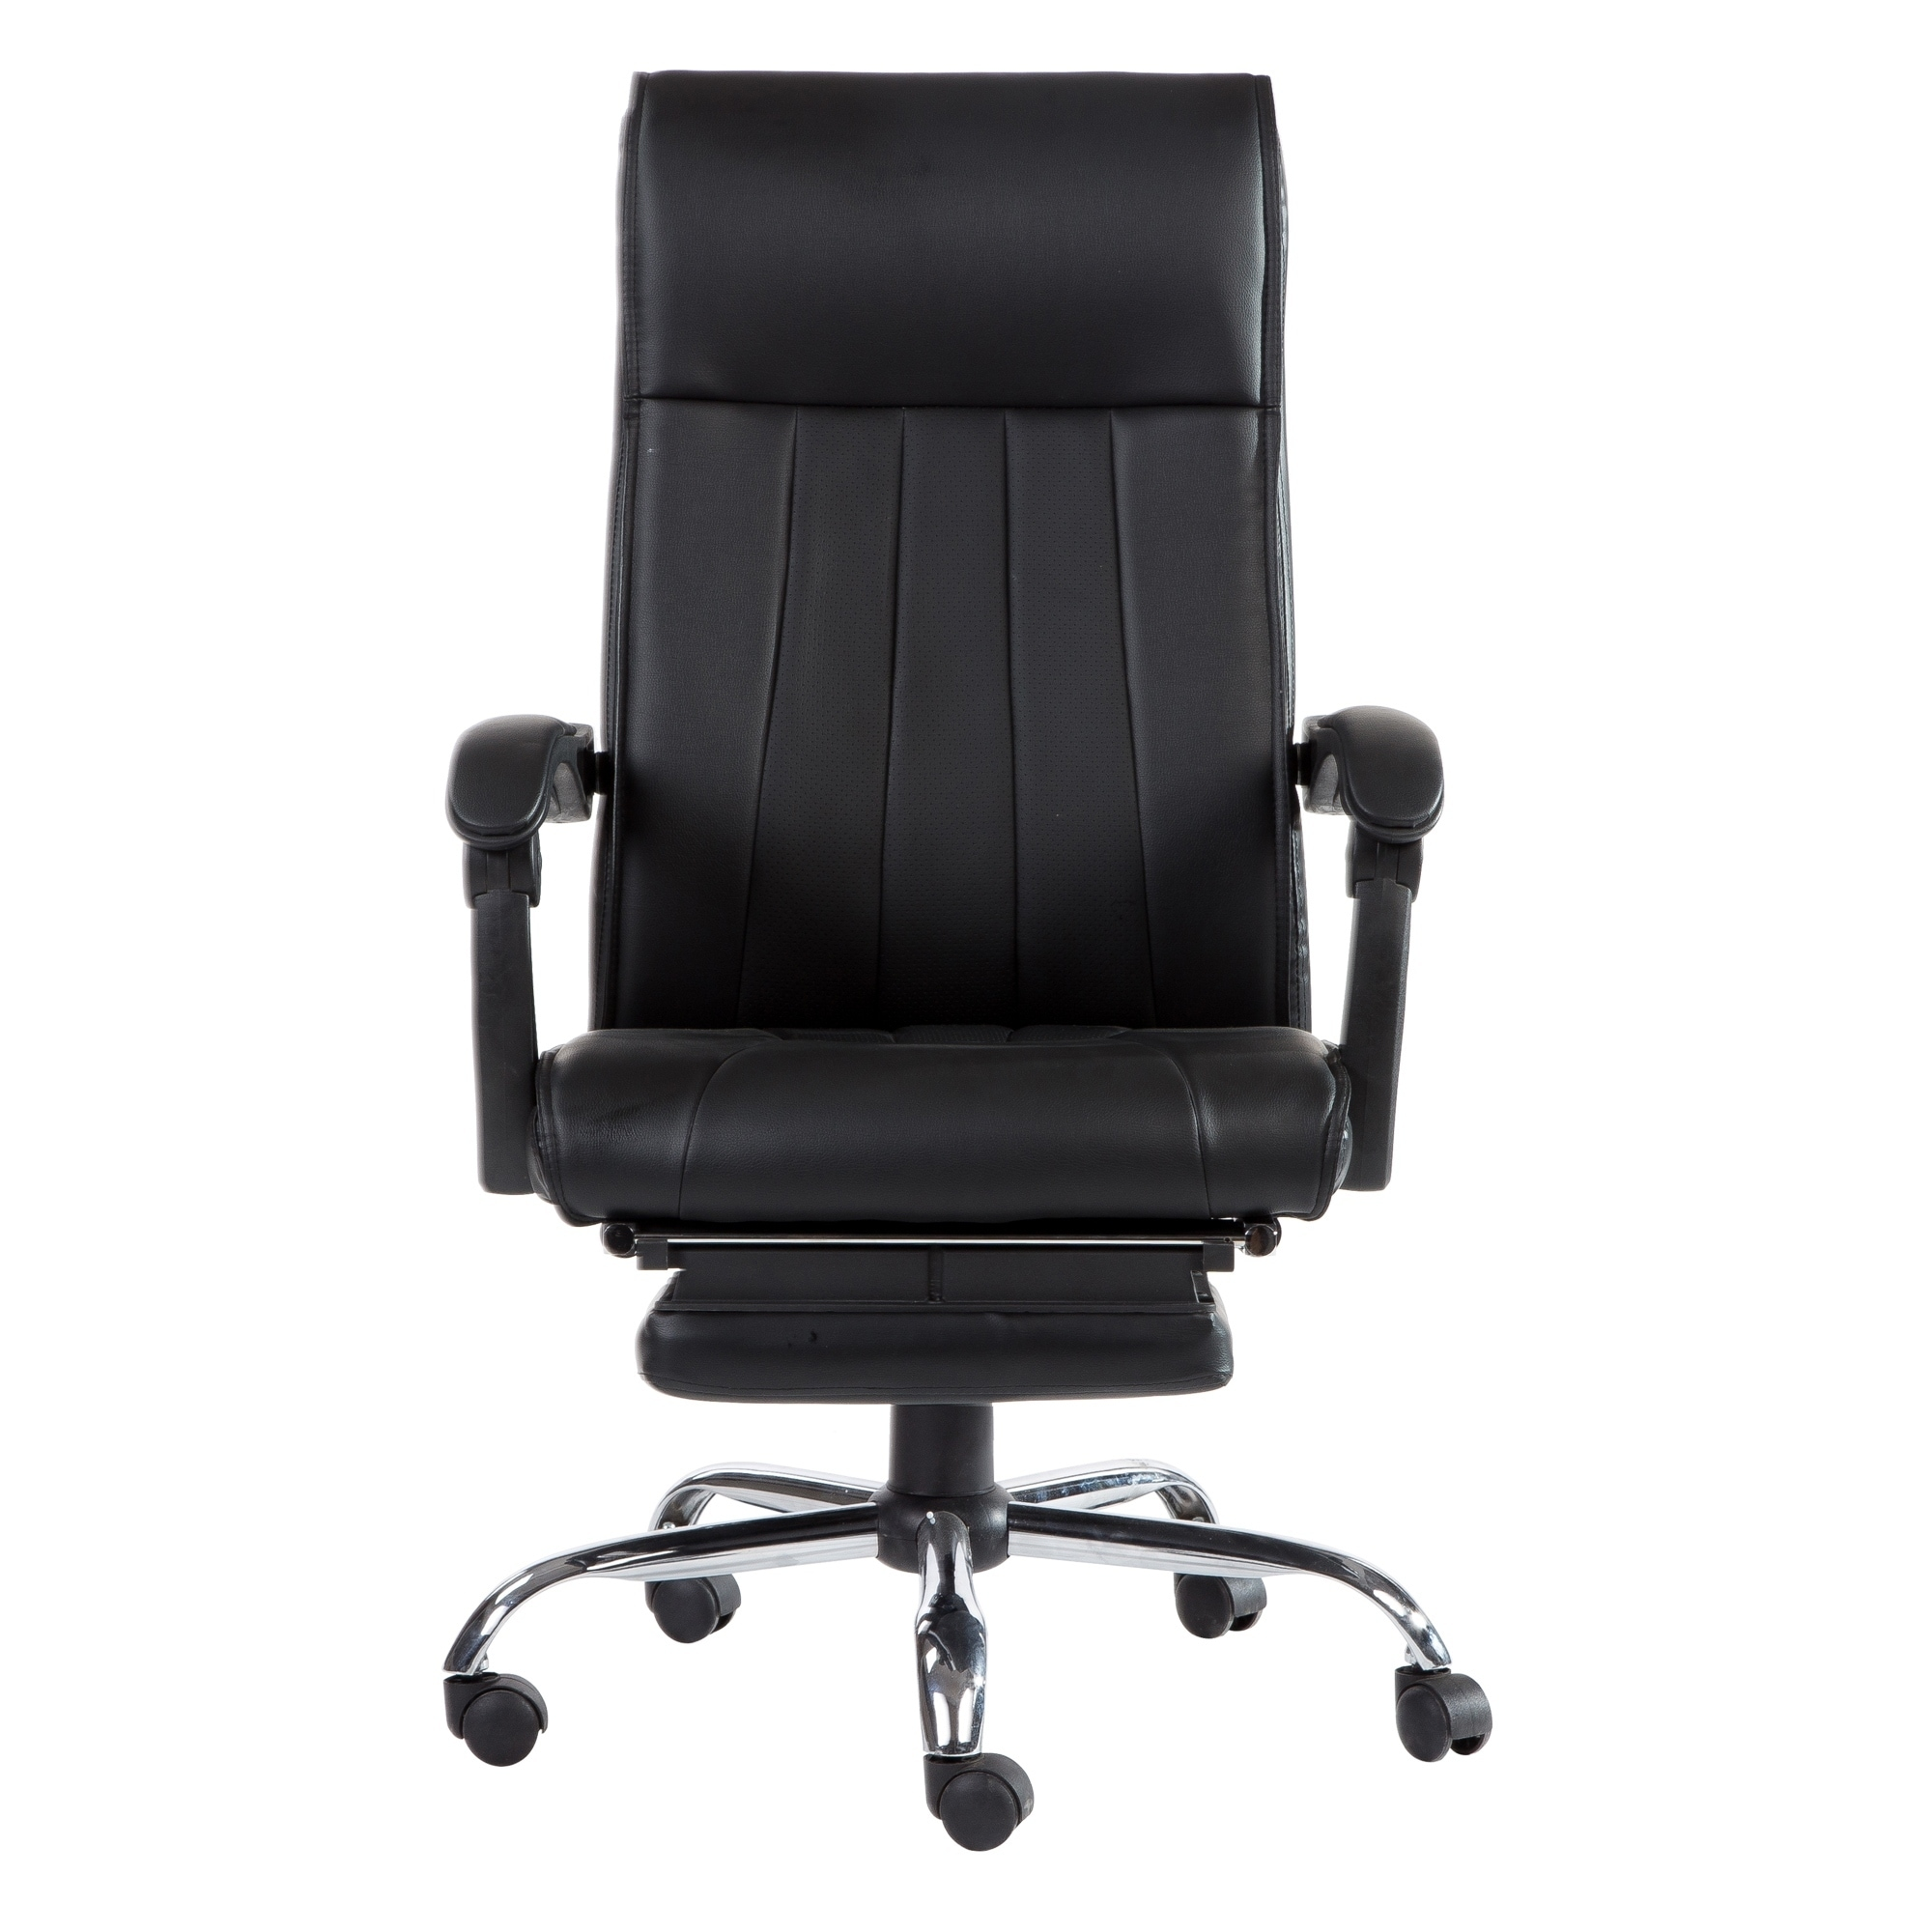 Executive Office Chair Leather Gaming Chair With Footrest Recliner Computer Desk